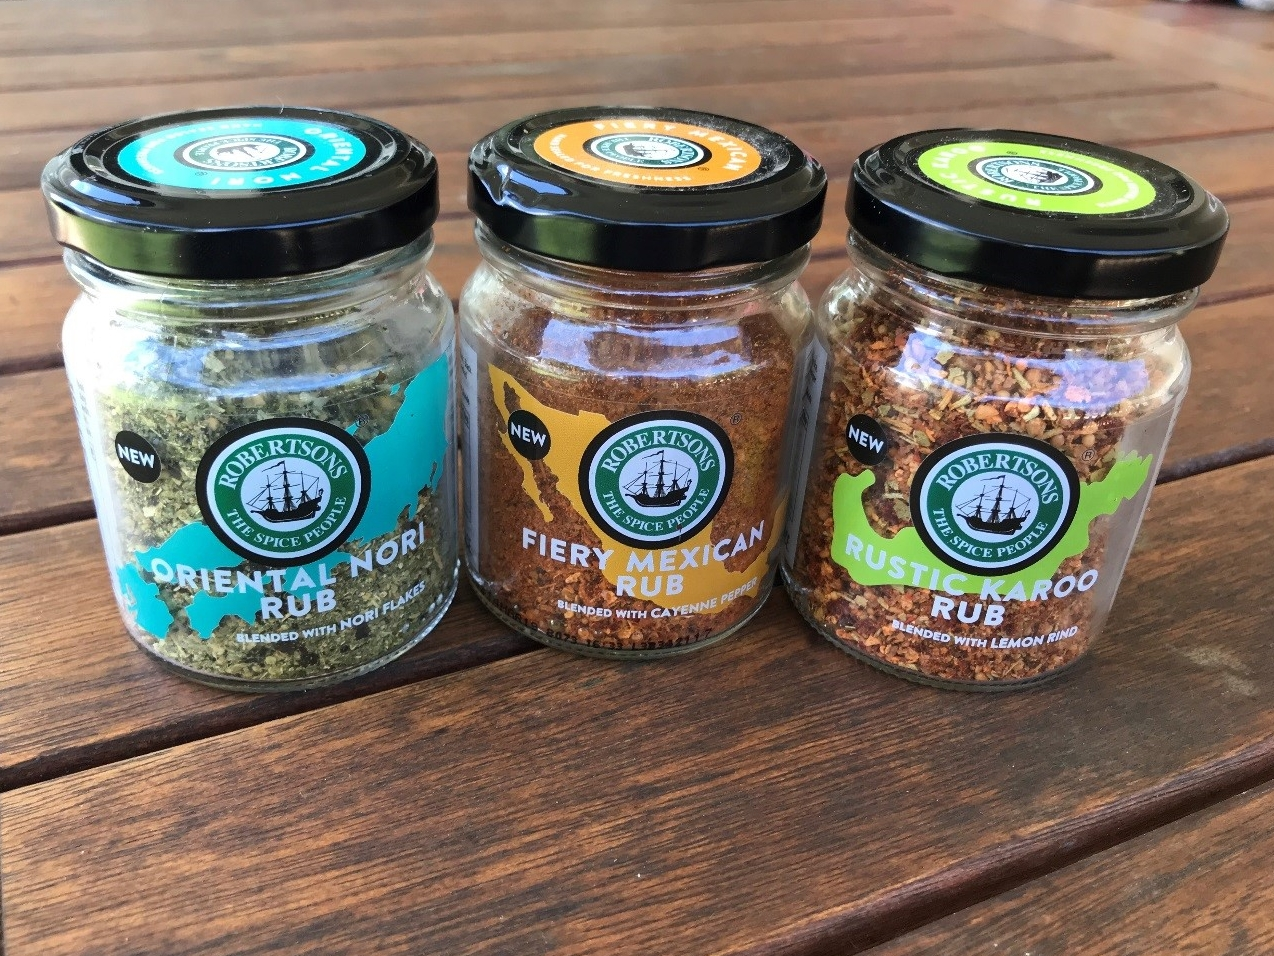 Robertson's spices in Oriental Nori, Fiery Mexican and Rustic Karoo